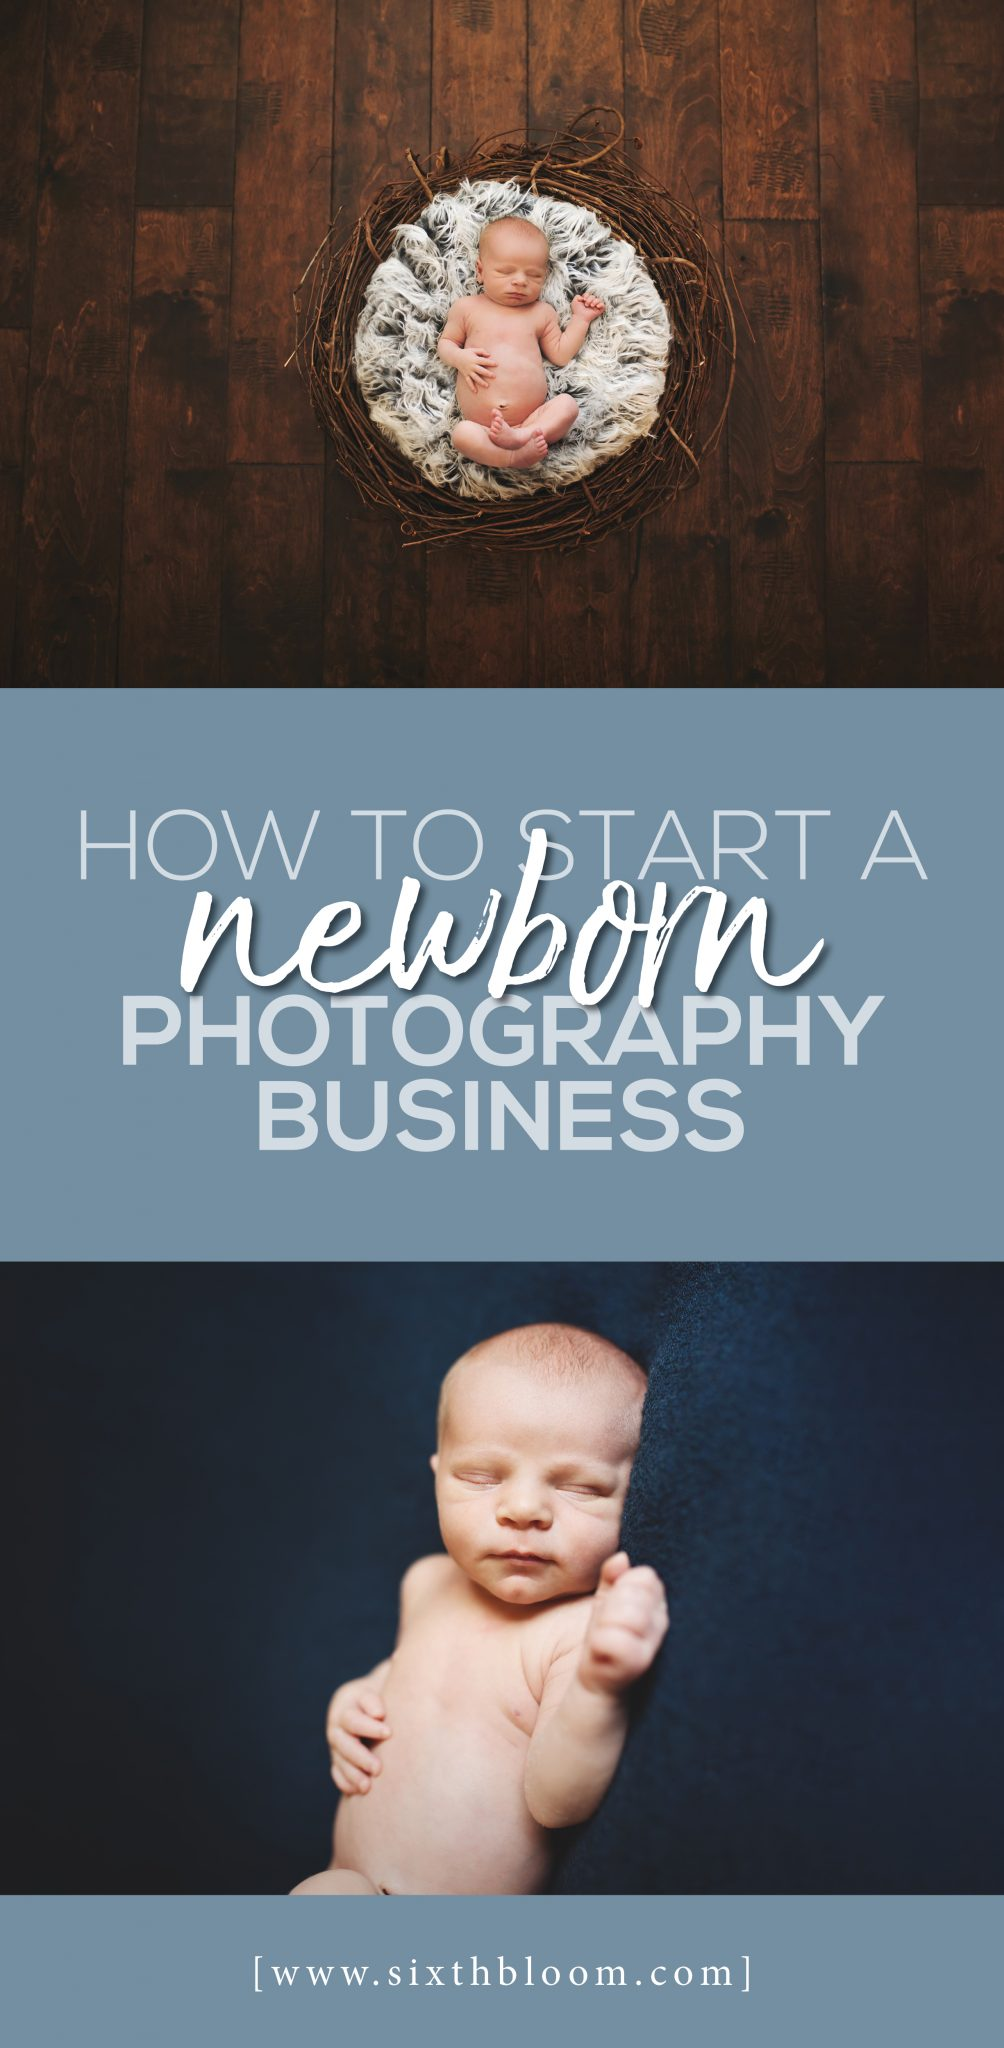 how to start a newborn photography business